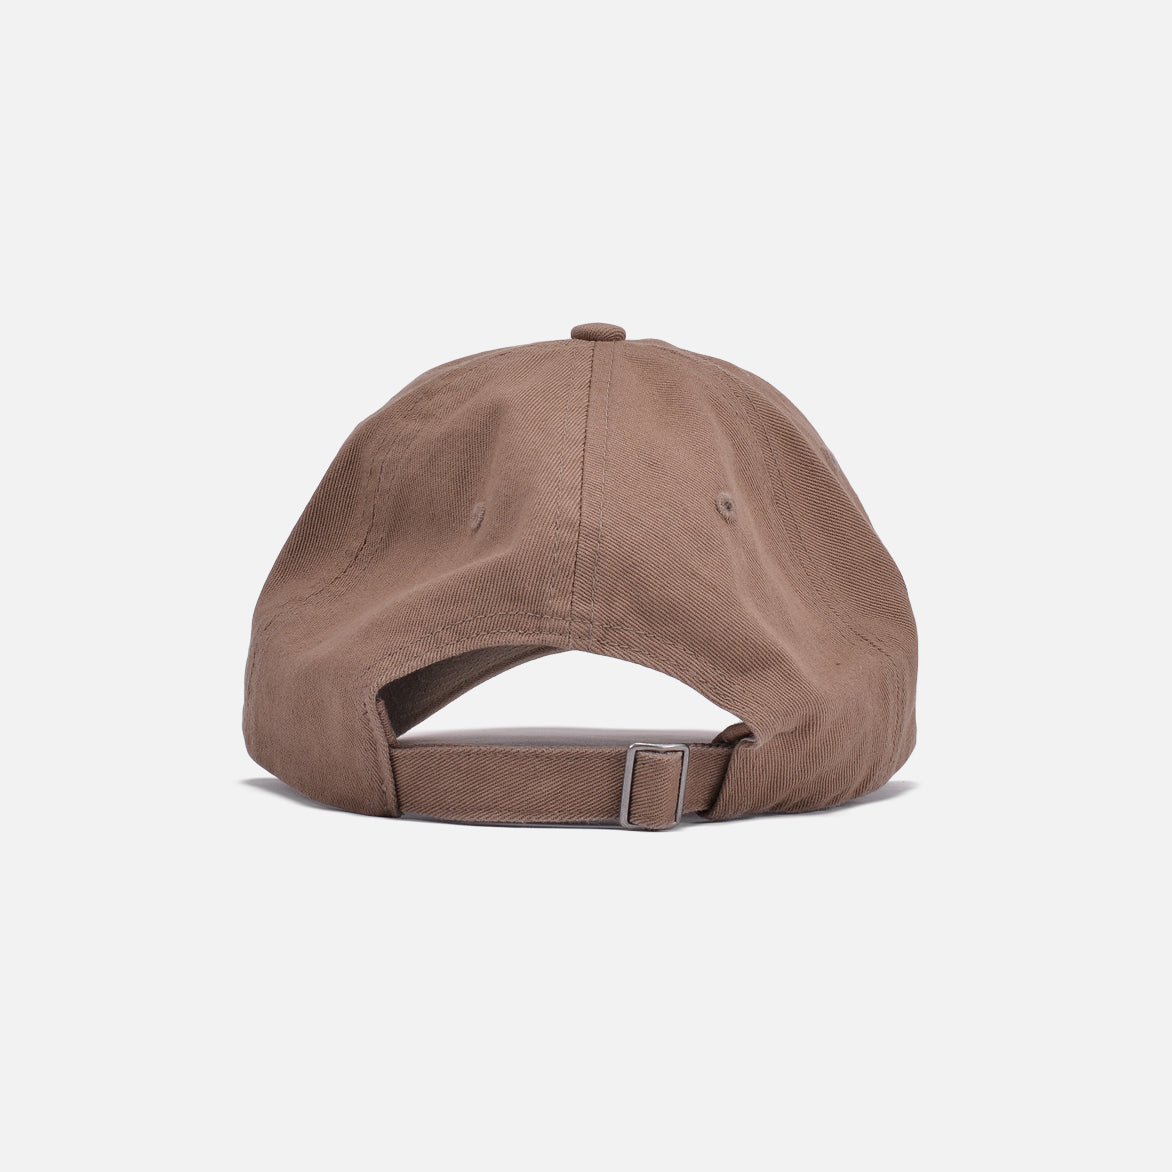 DIVINE POLO HAT - BROWN